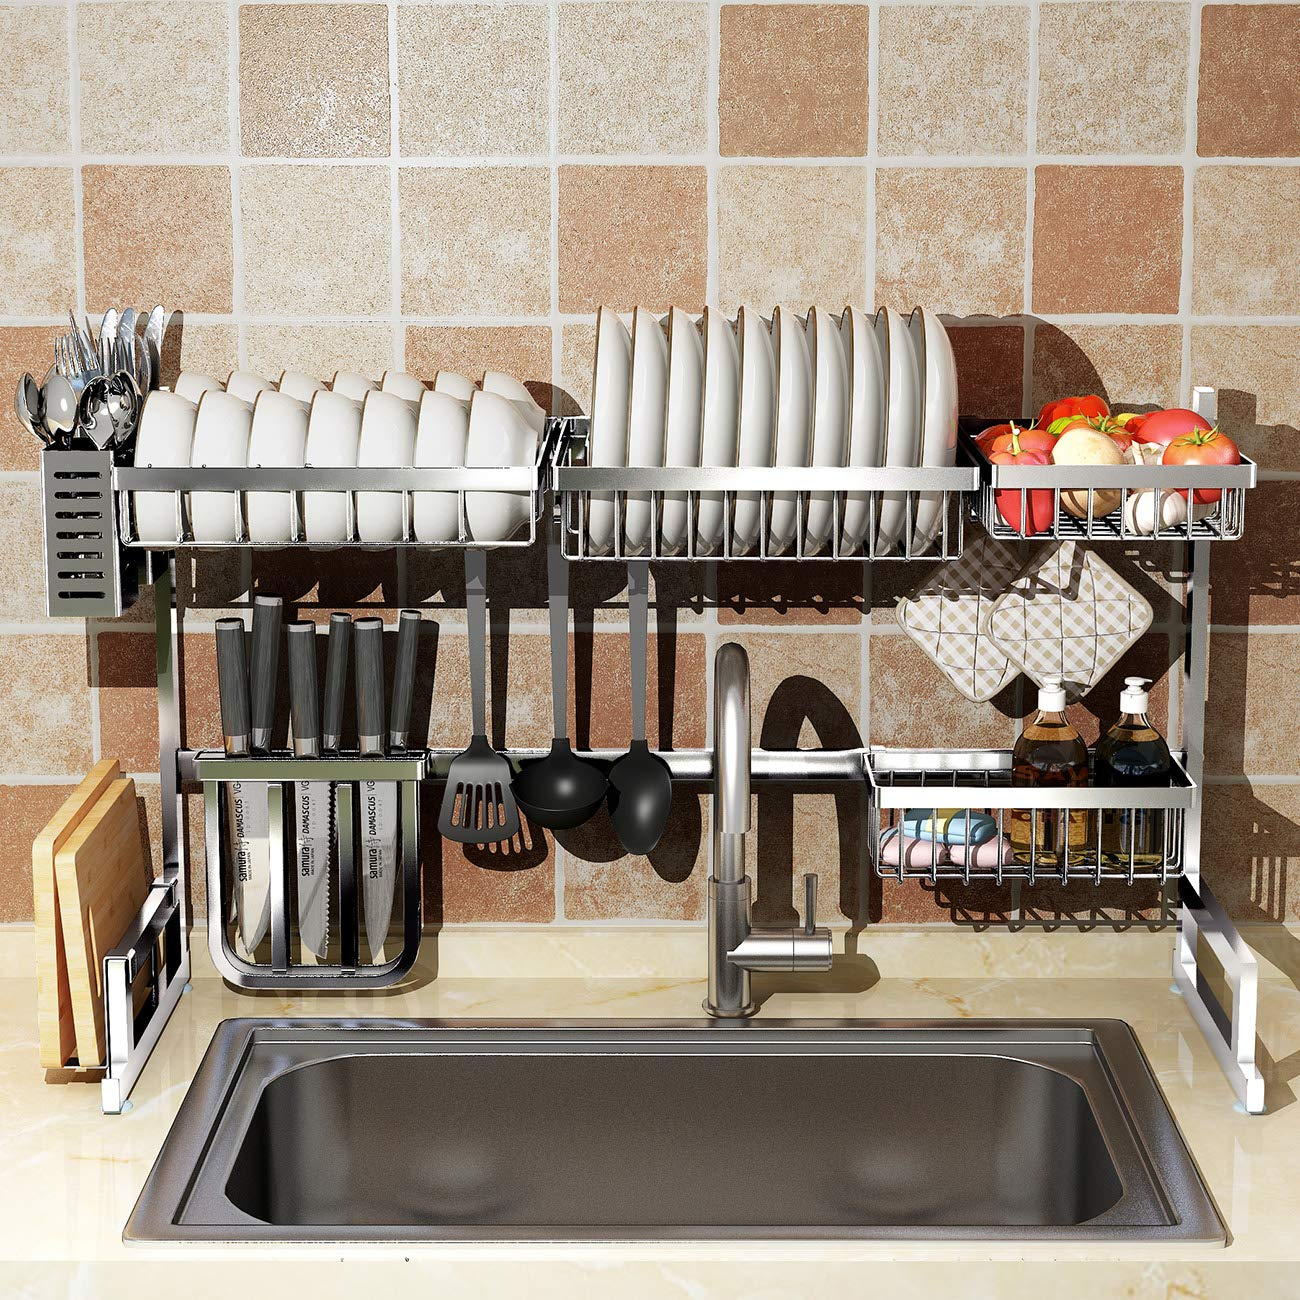 Kitchen Over Sink Dish Drying Rack Shelf Drainer Stainless Steel Cutlery